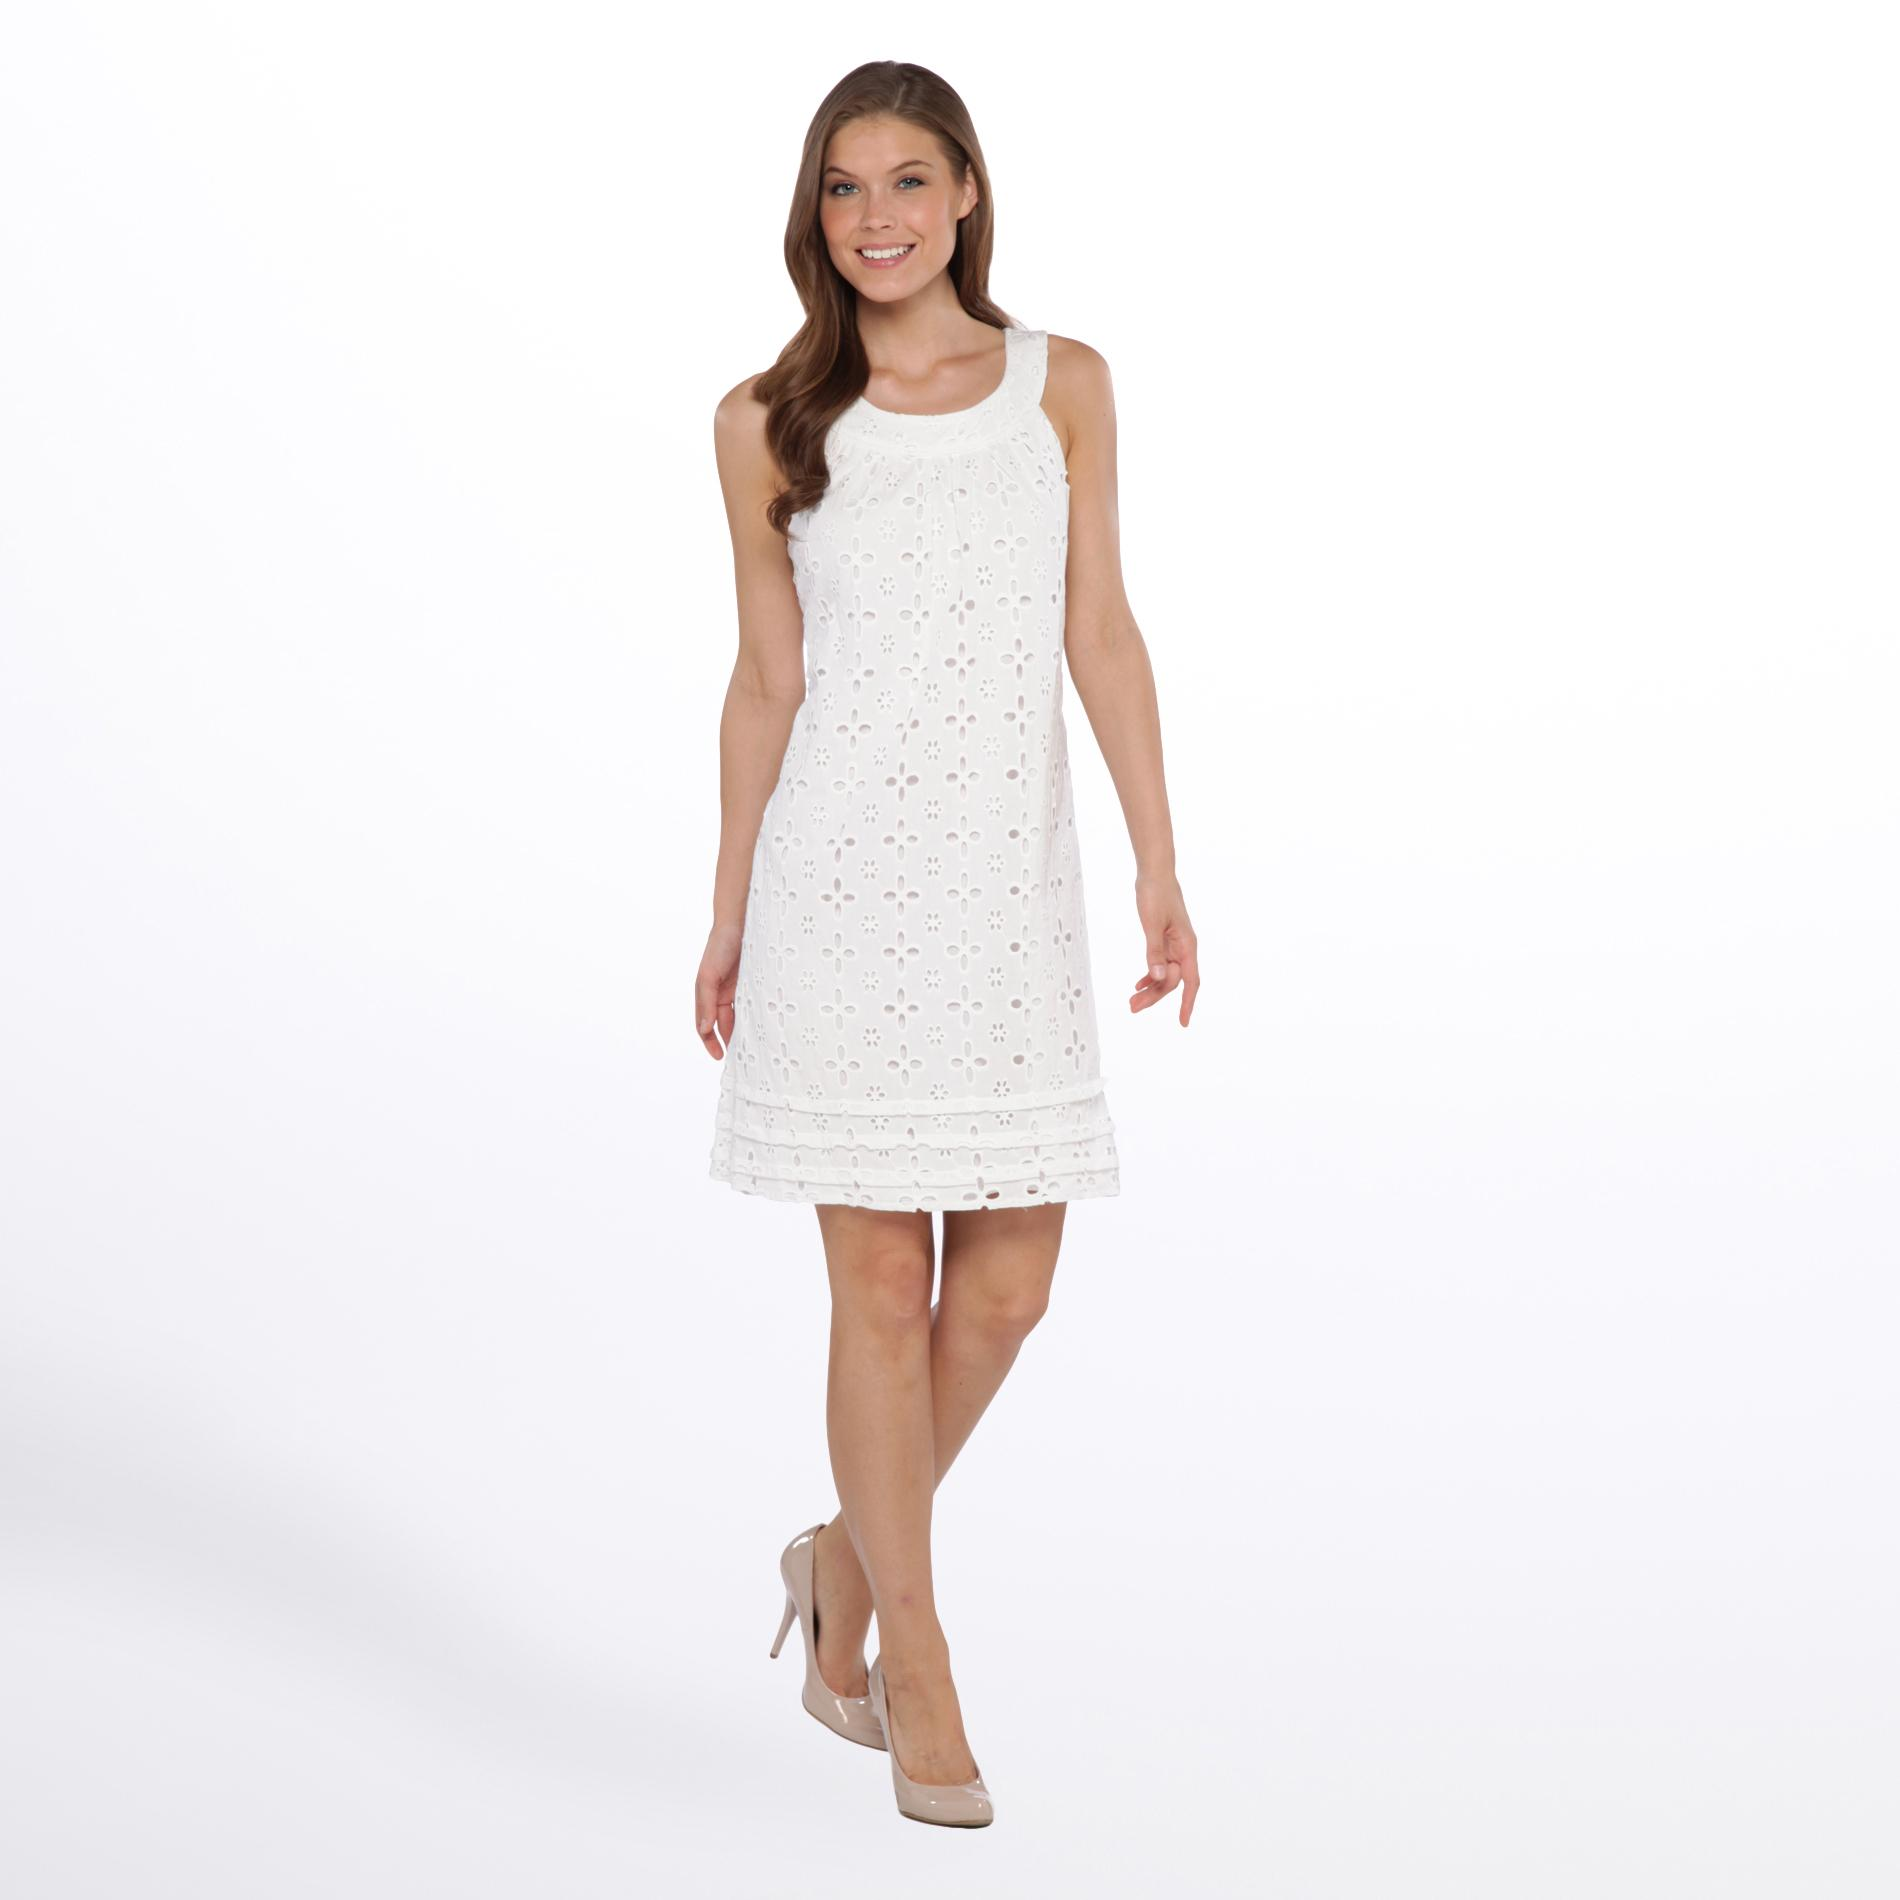 Tiana B Women's Shift Dress - Eyelet Embroidered at Sears.com